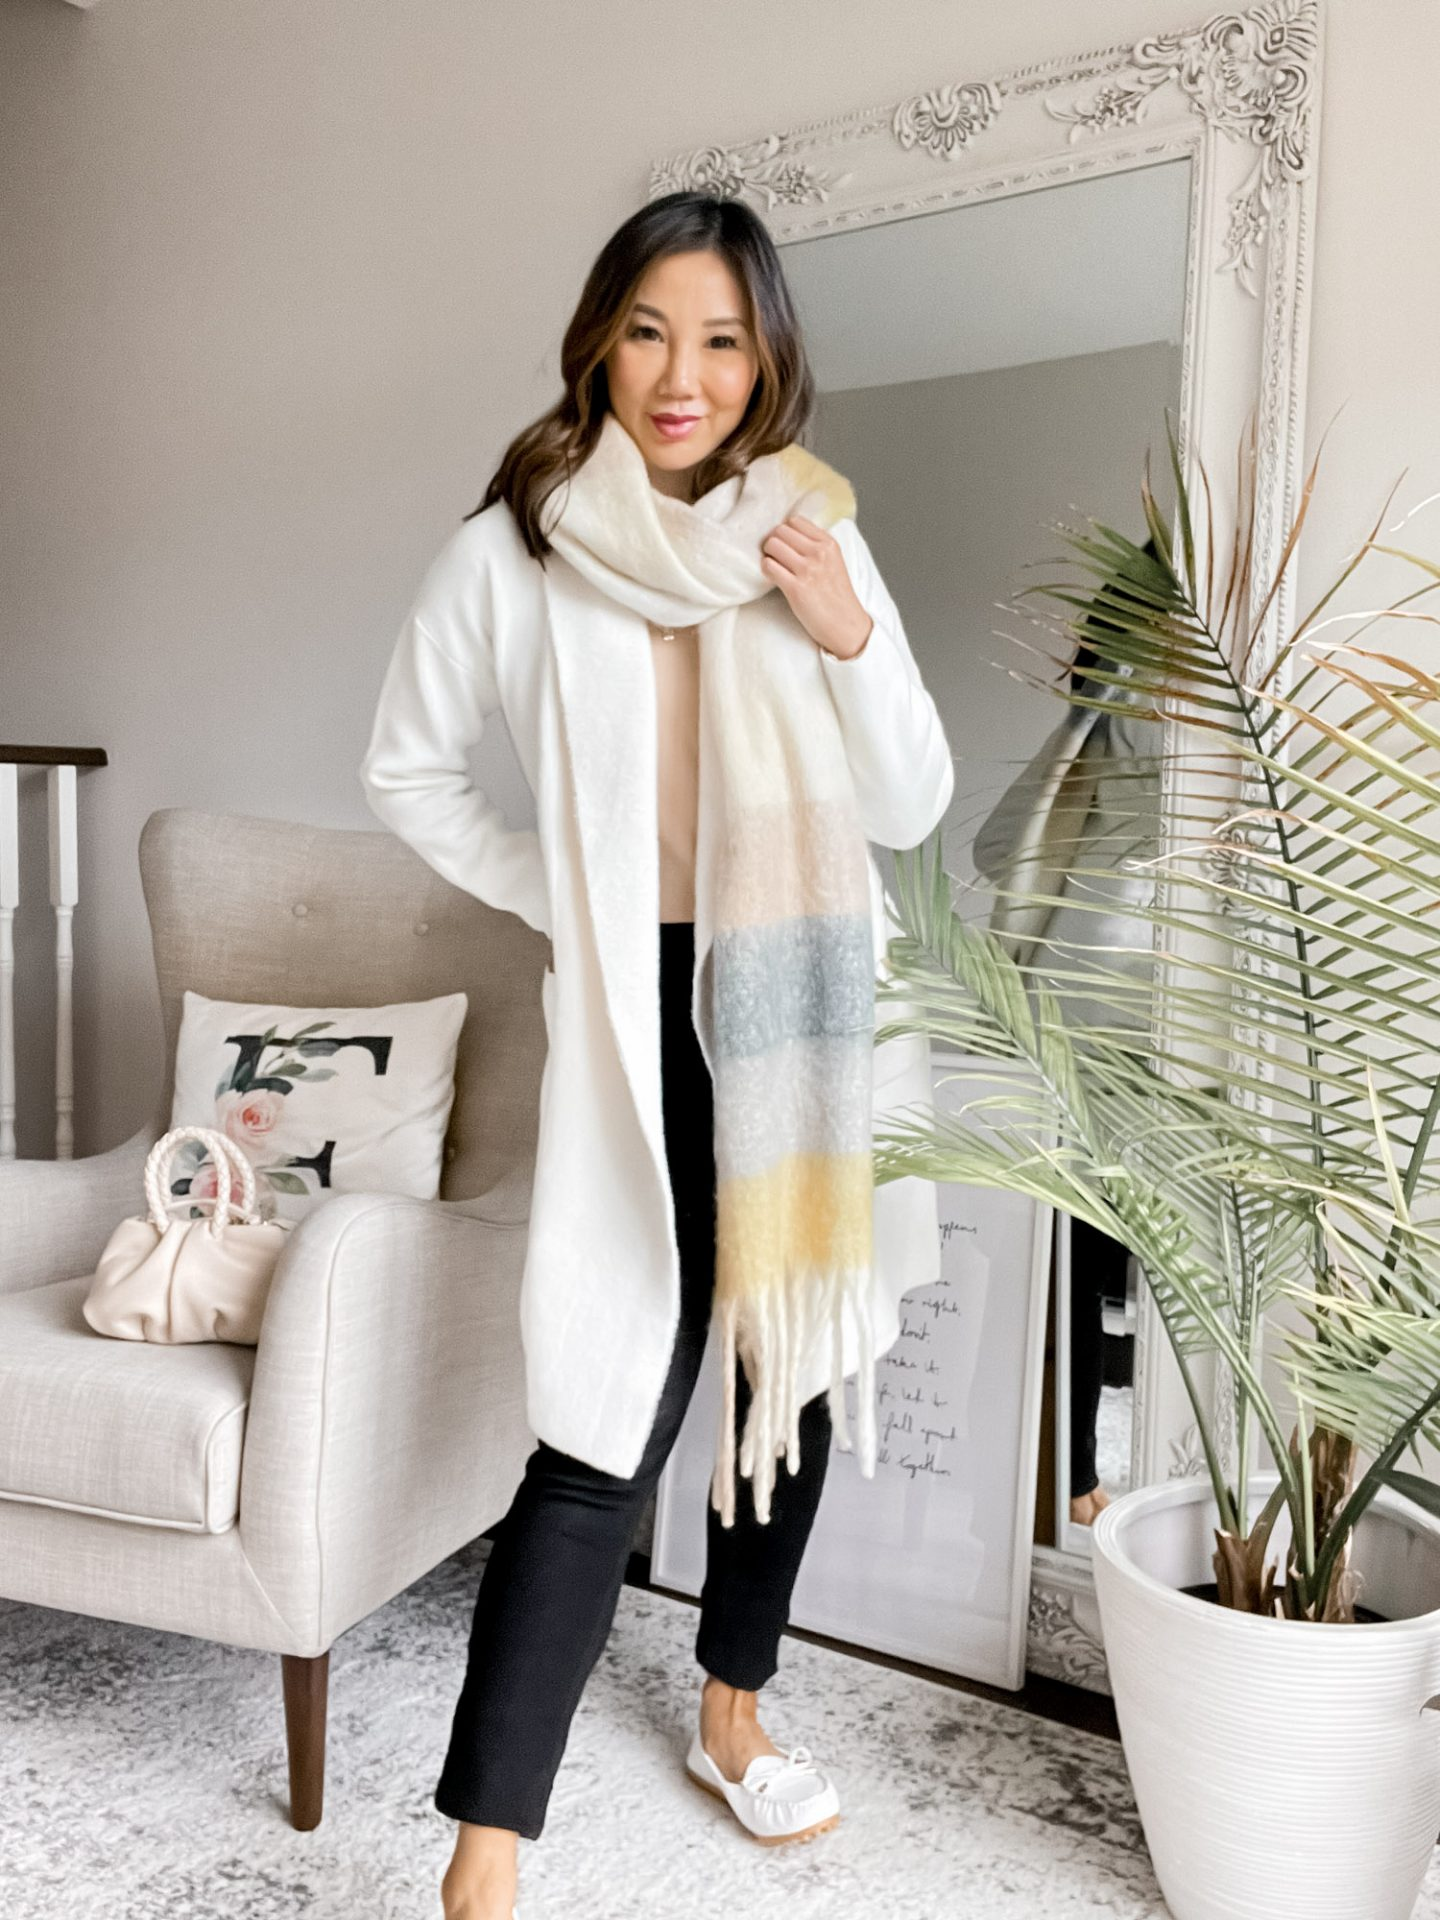 Time to get cozy! This coatigan is the perfect layering piece for fall and winter. Staying cozy in this casual fall outfit layered with a knit scarf and tan sweater. Styled by Eileen Lazazzera of yesmissy.com